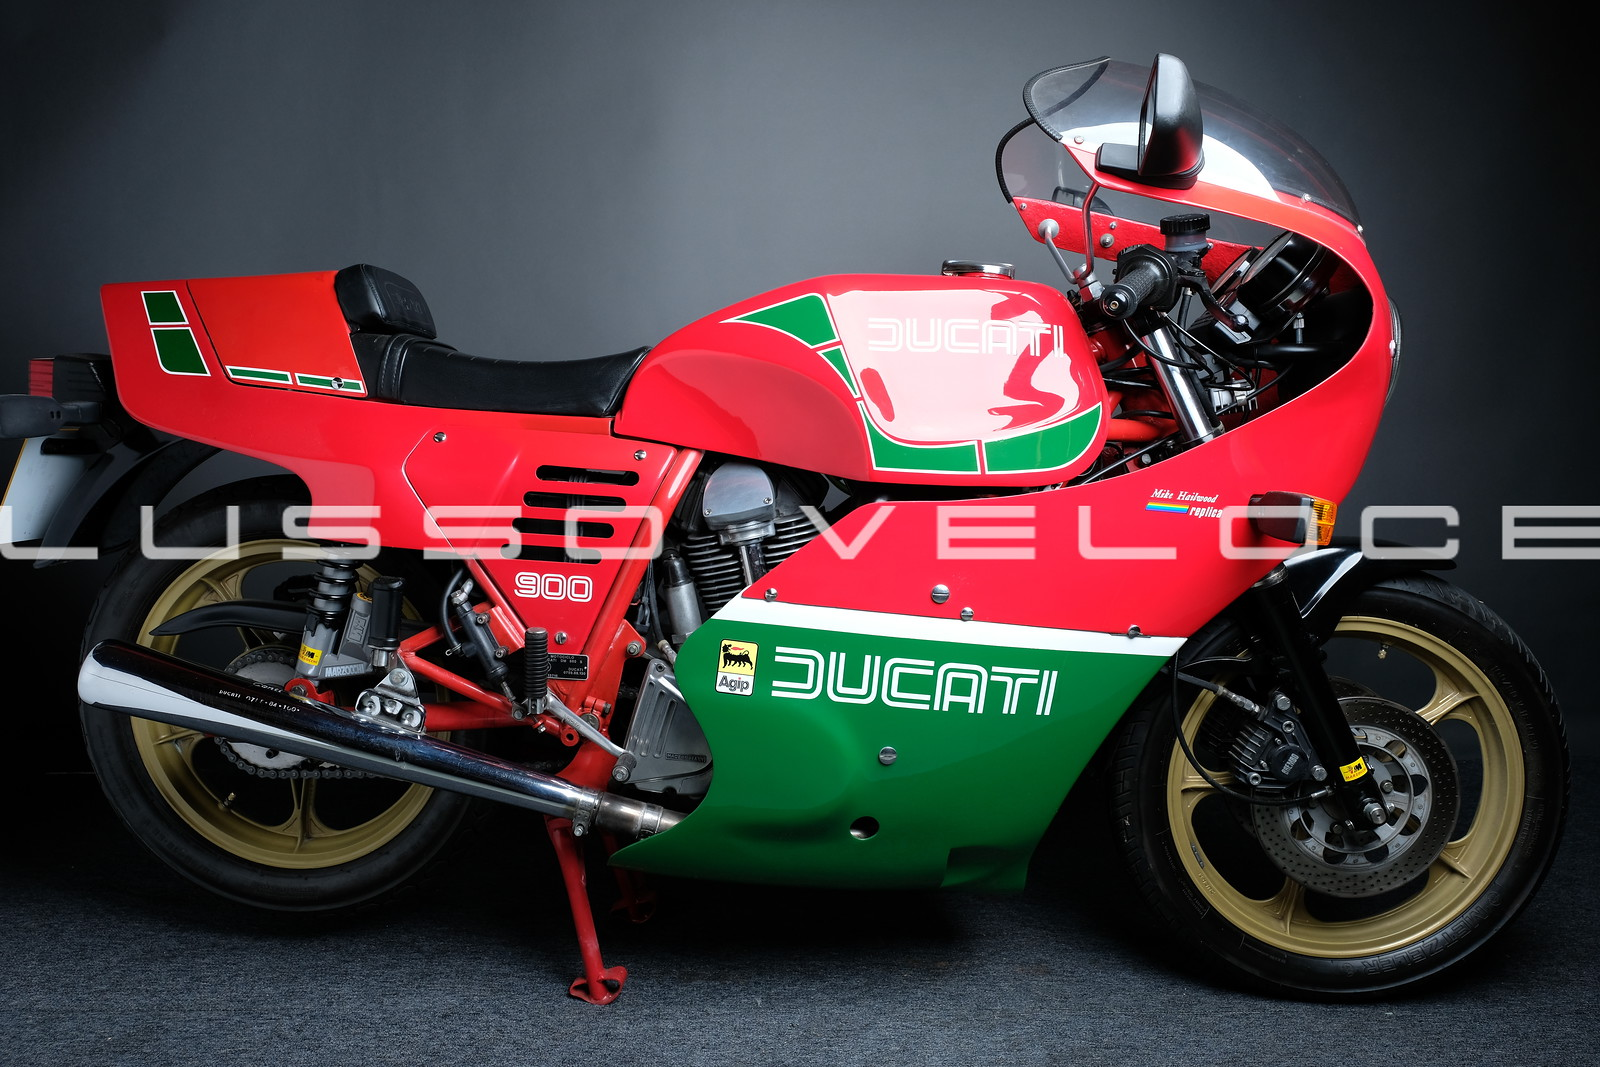 Ducati MHR Electric start 1985